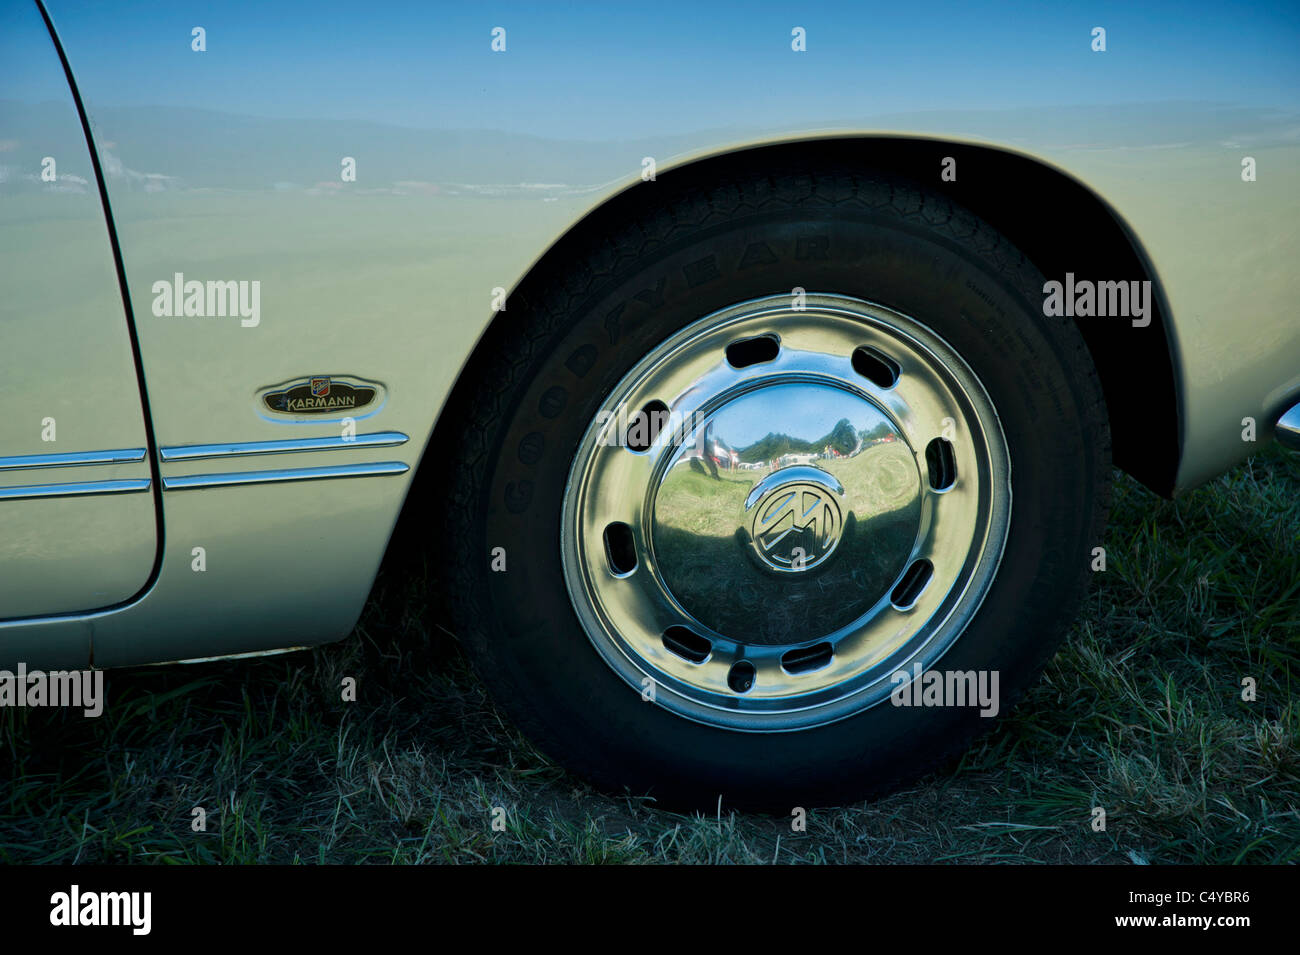 Karman Ghia front wing and wheel, name badge VW - Stock Image